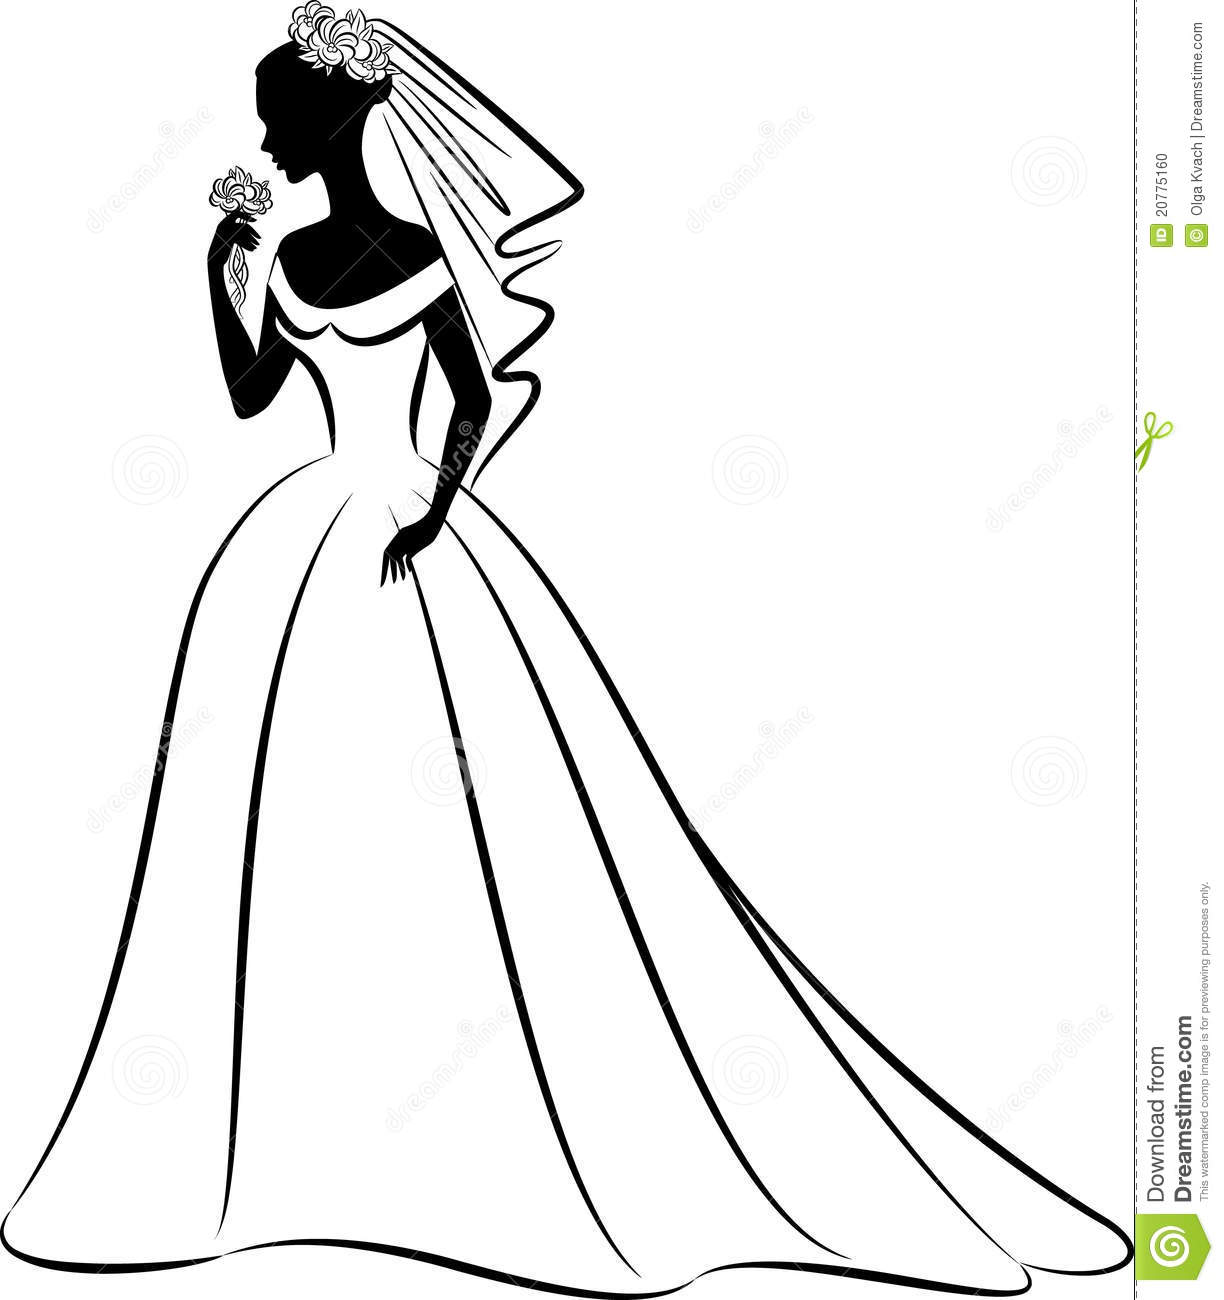 Bride clipart free graphic library download 34+ Bride Clipart | ClipartLook graphic library download